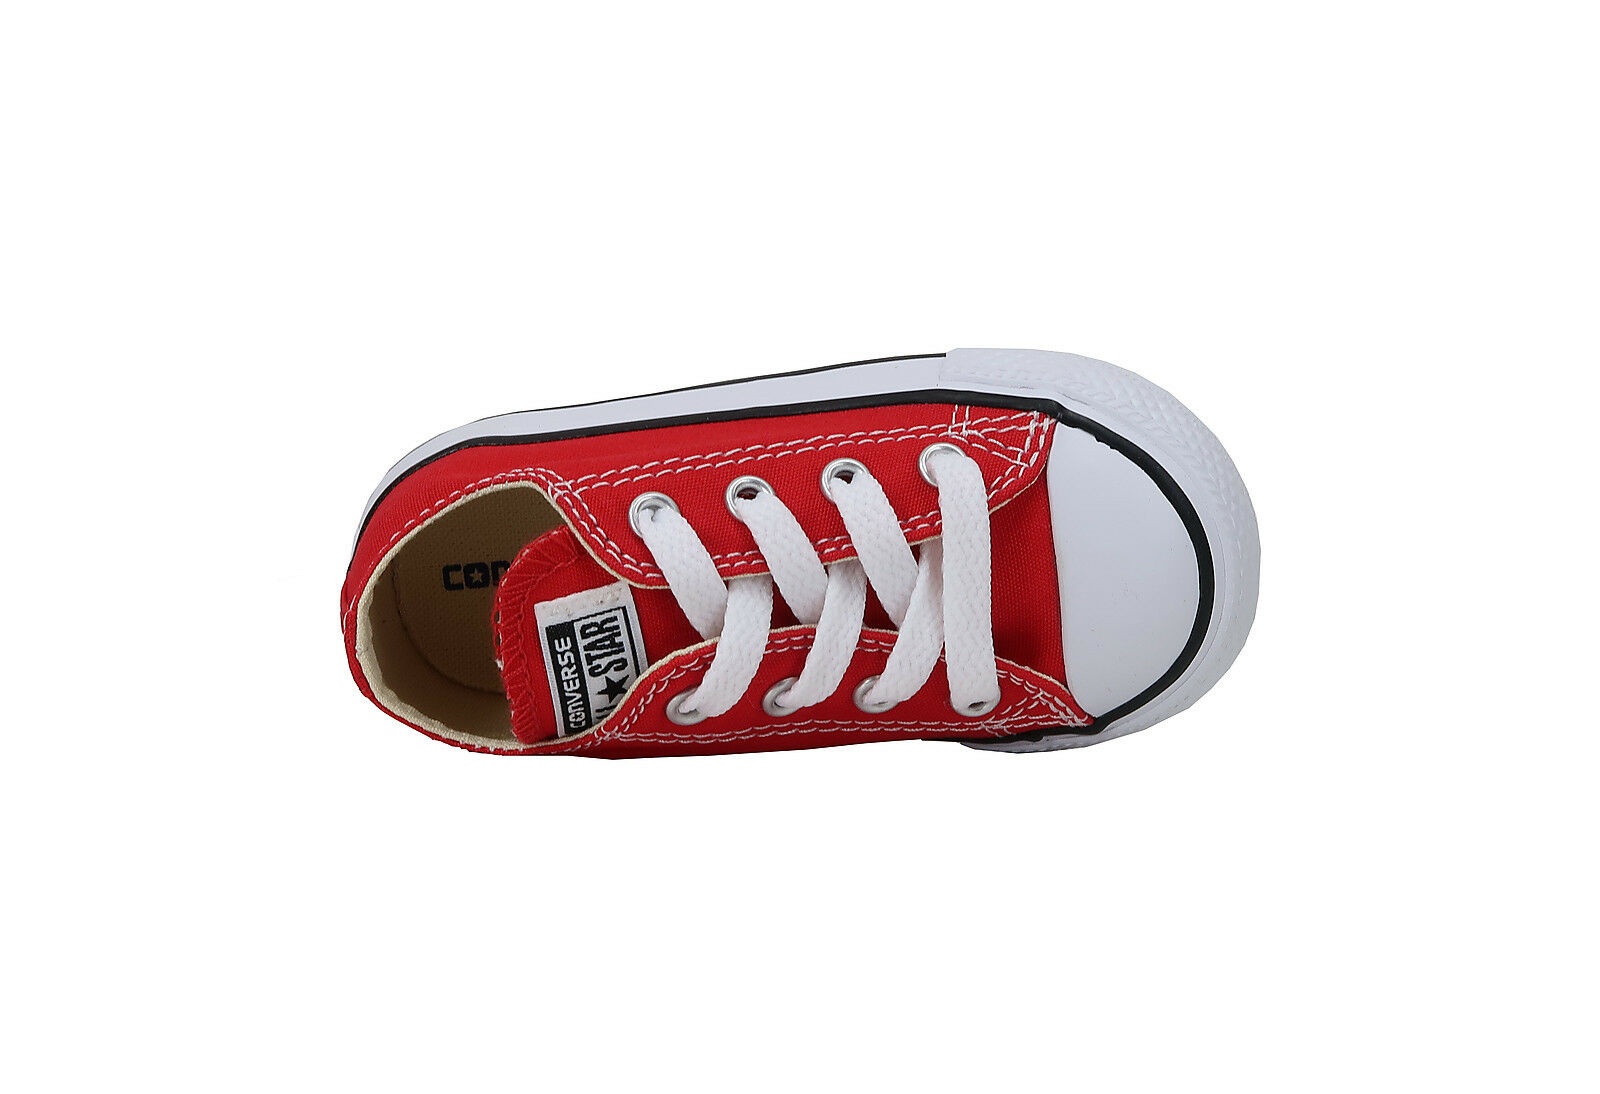 838bdd5fbc9 Converse Chuck Taylor All Star Ox Unisex Shoes Red 7j236 9 for sale online